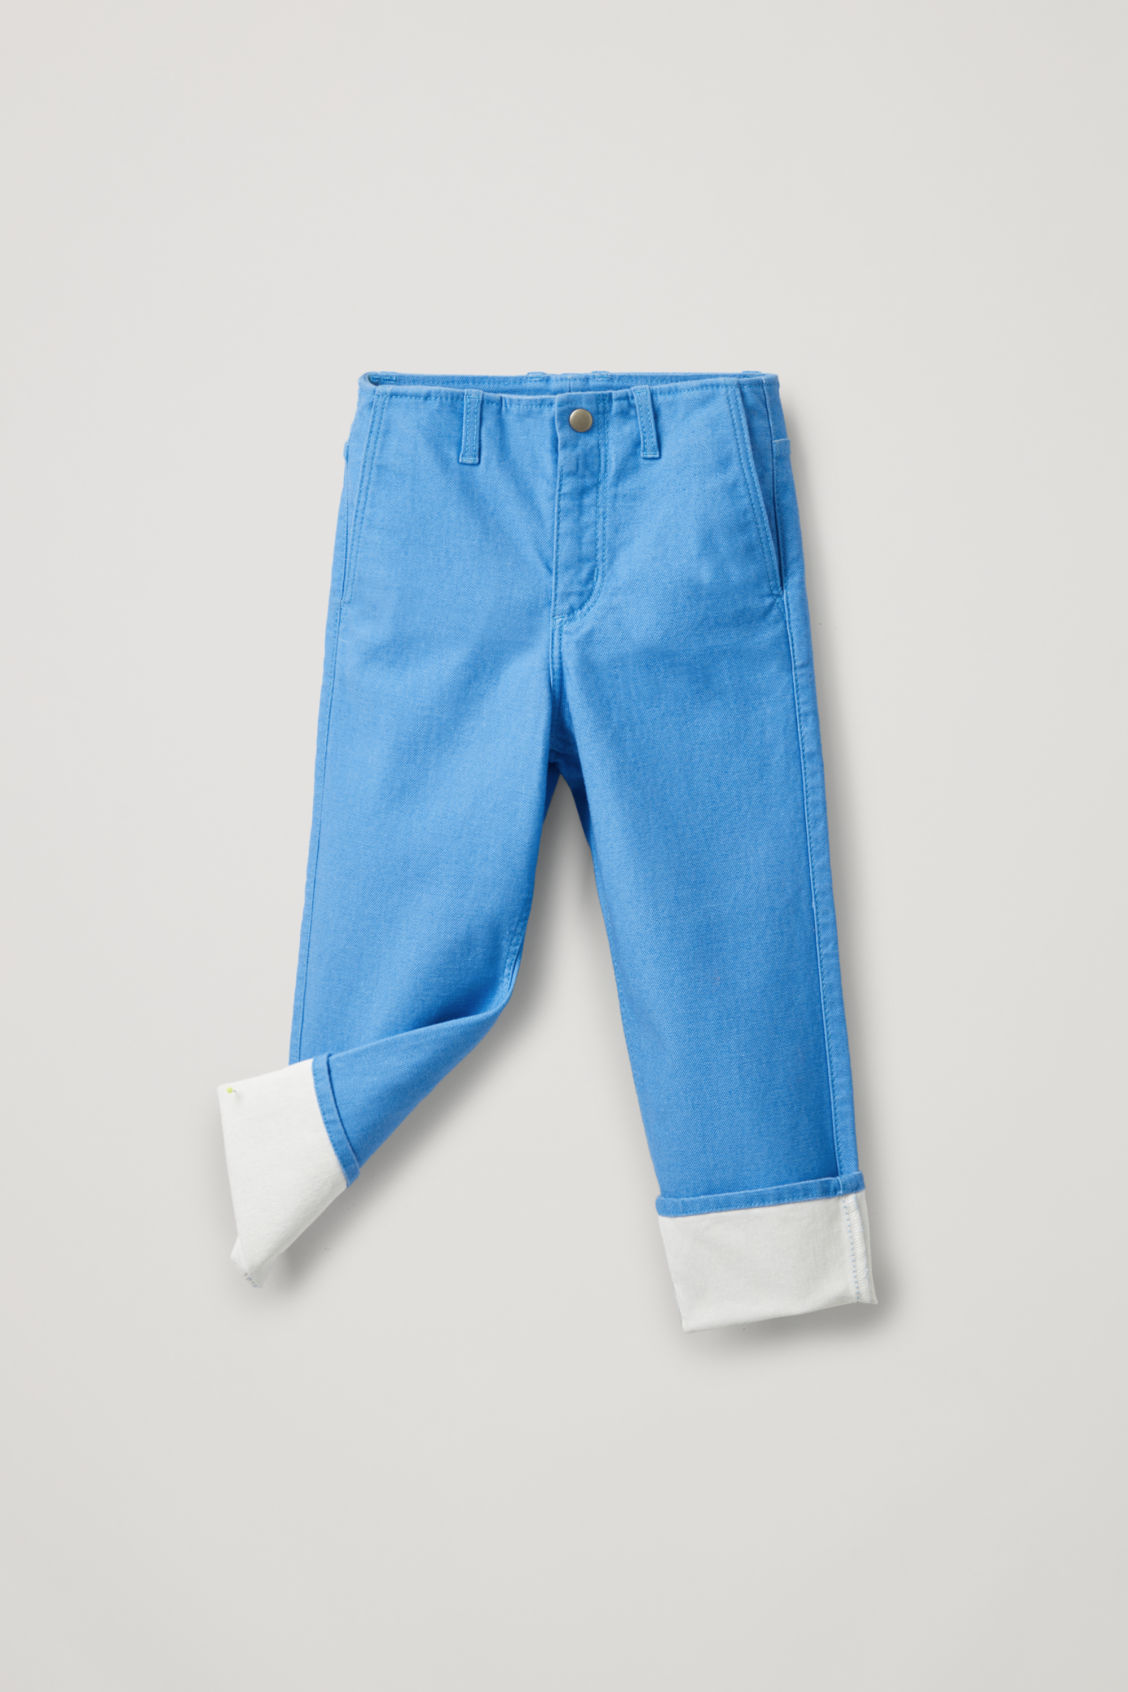 Cos Kids' Coated Organic-cotton Jeans In Blue